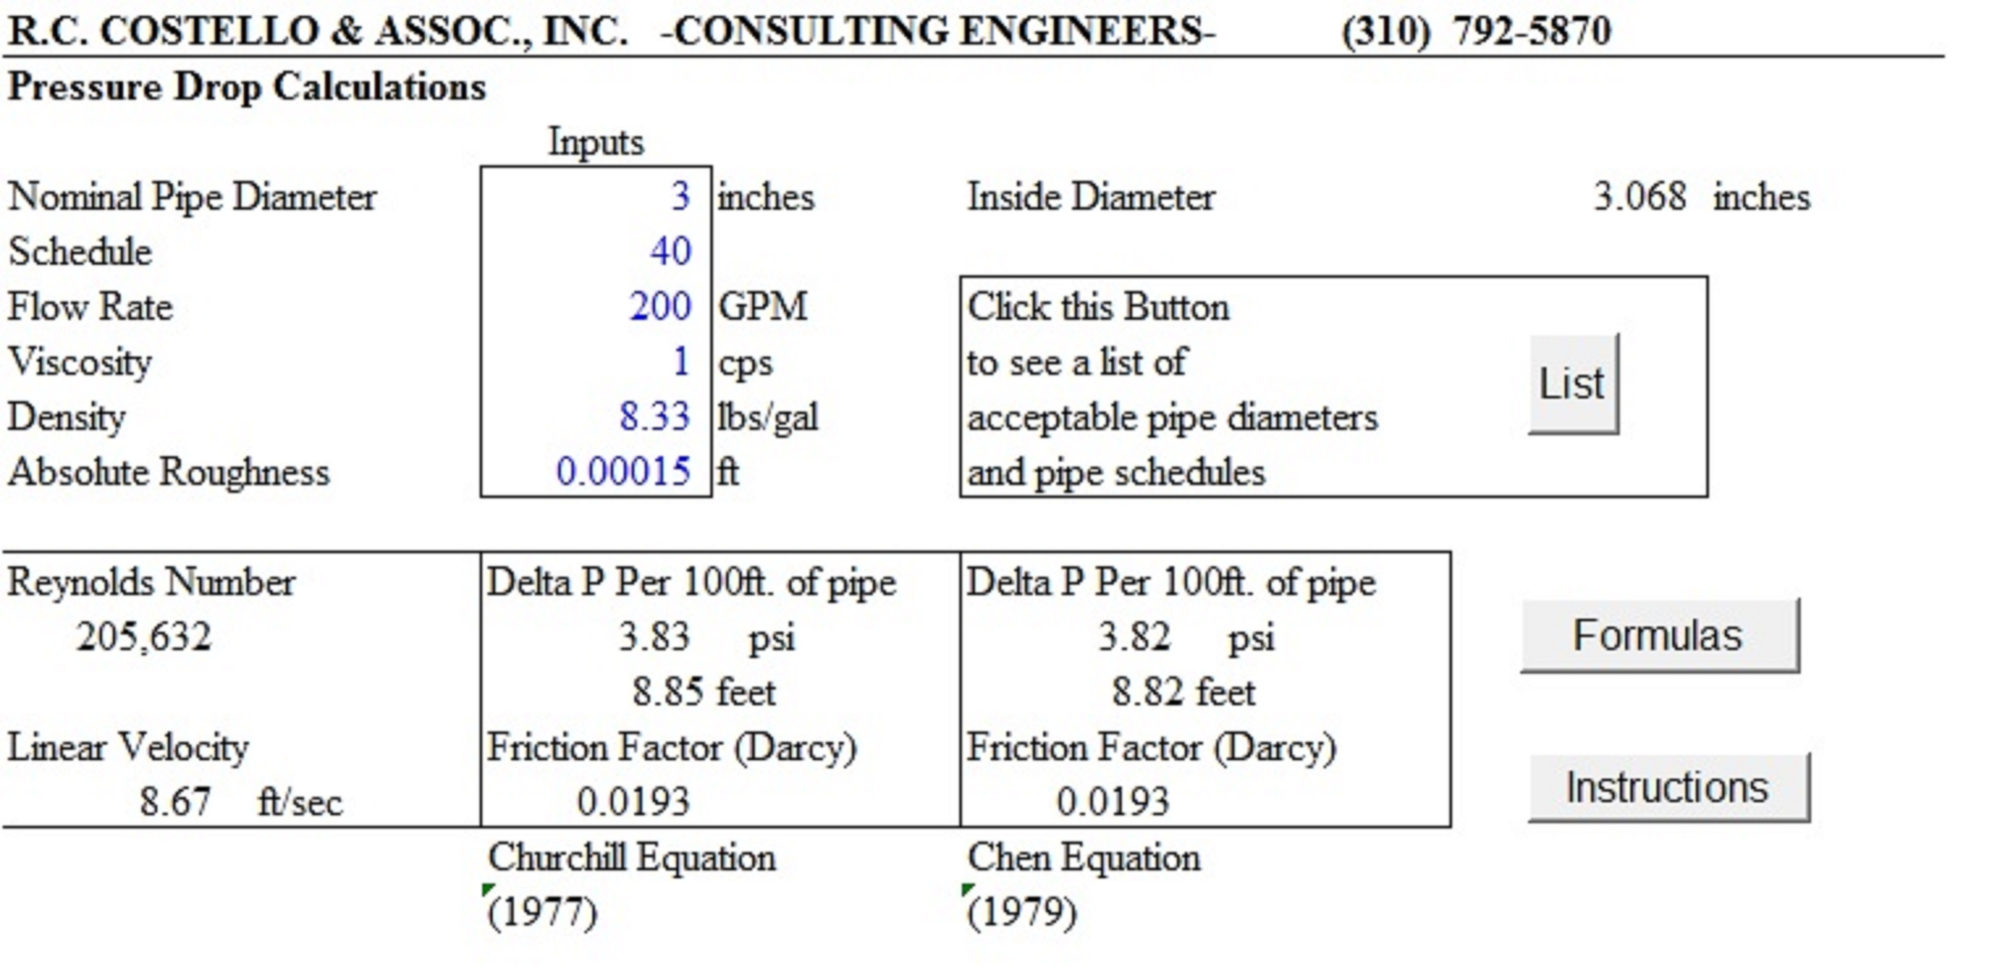 Excel Spreadsheets For Piping Calculations Throughout Pipeflow 3.0  A Pressure Drop Calculator – Costello